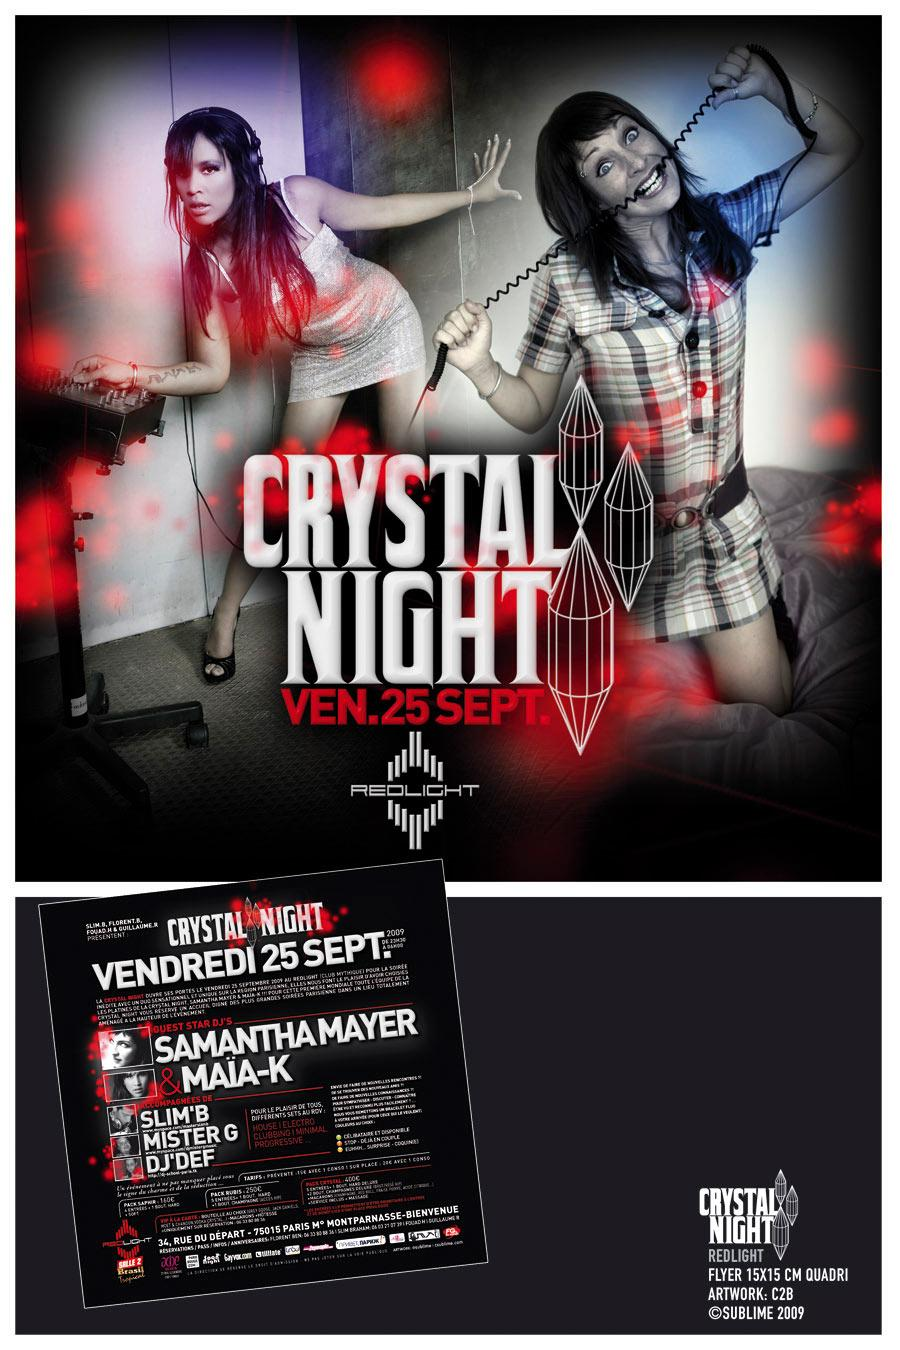 crystalnight_redlight_CSUBLIME_flyer.jpg (image)